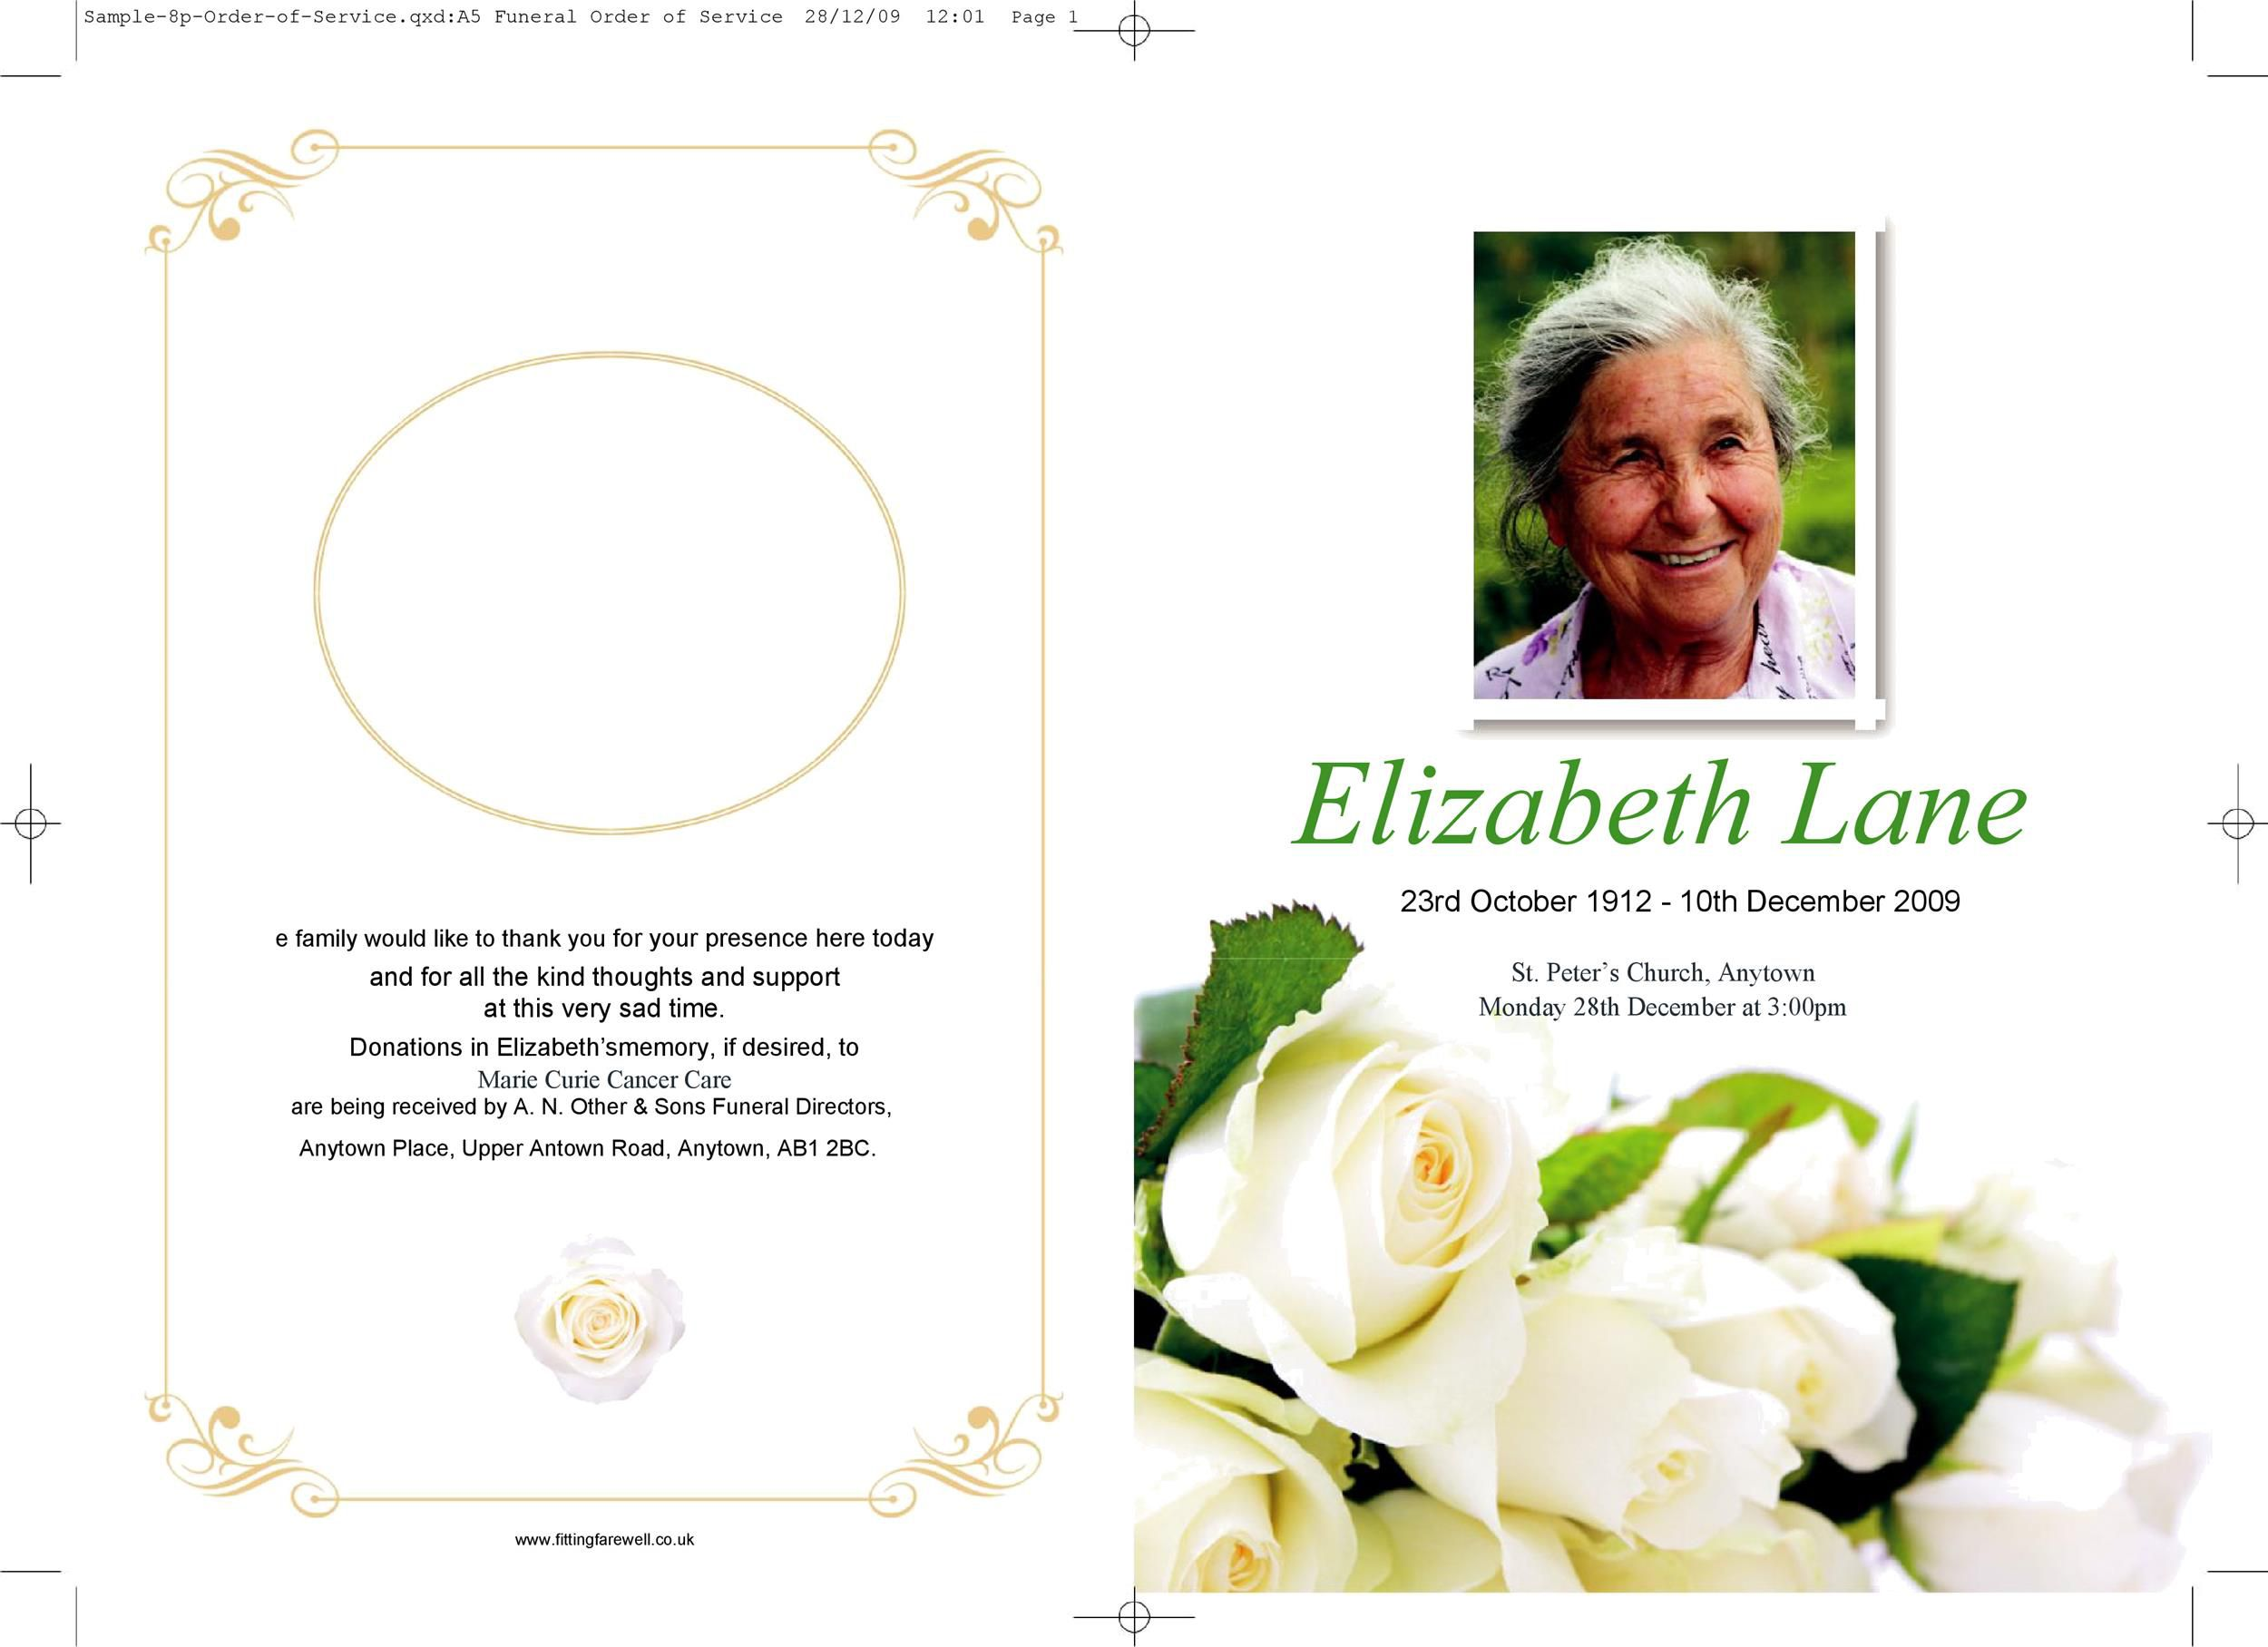 008 Stunning Funeral Program Template Free Photo  Online Printable Download PublisherFull